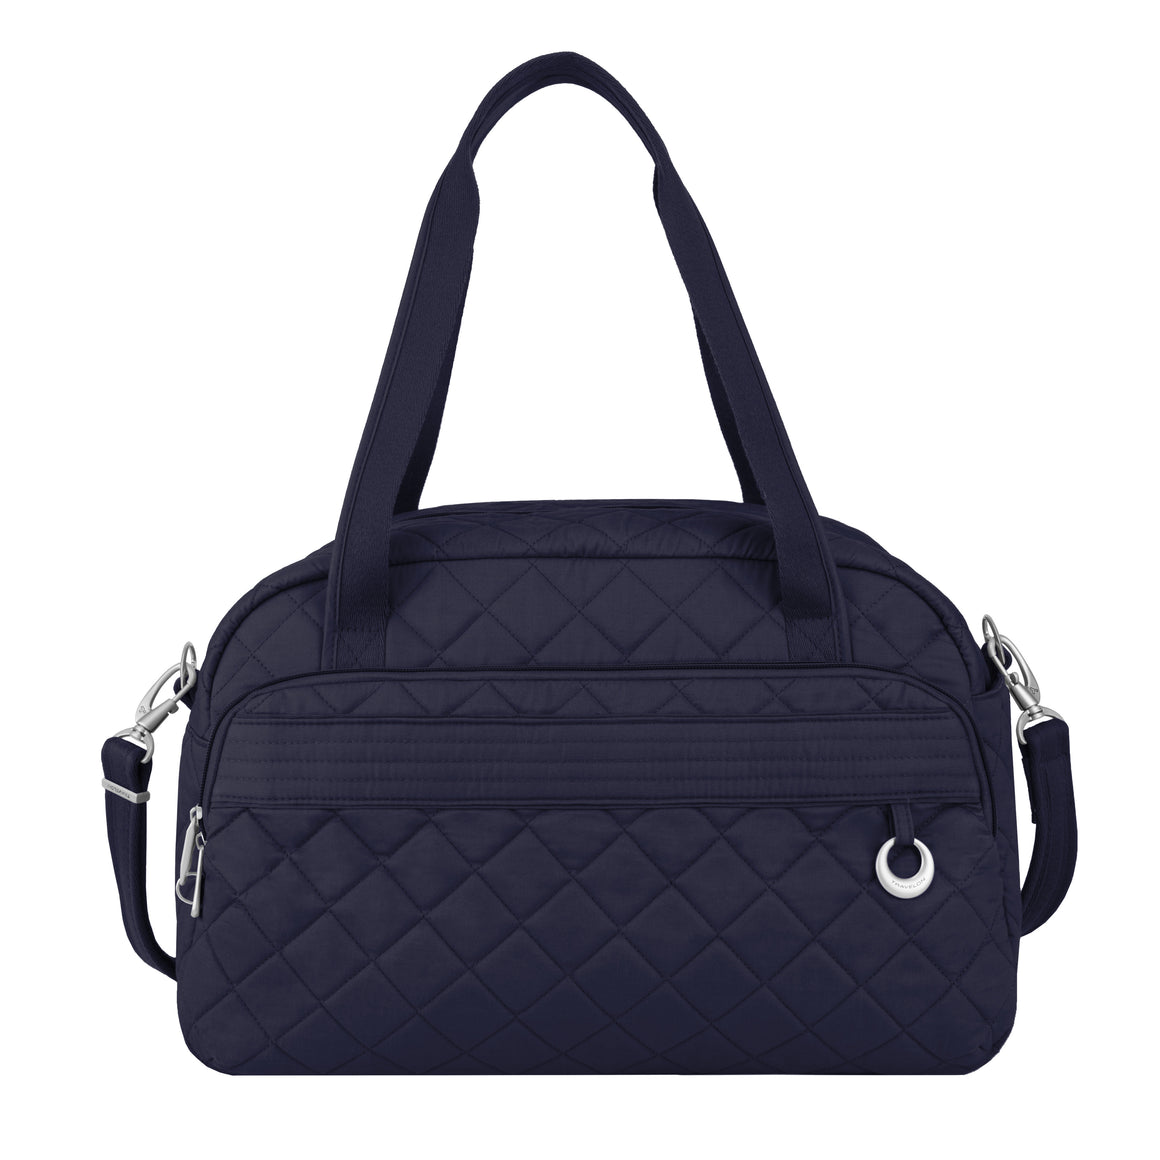 Travelon Boho Collection Weekender Duffel